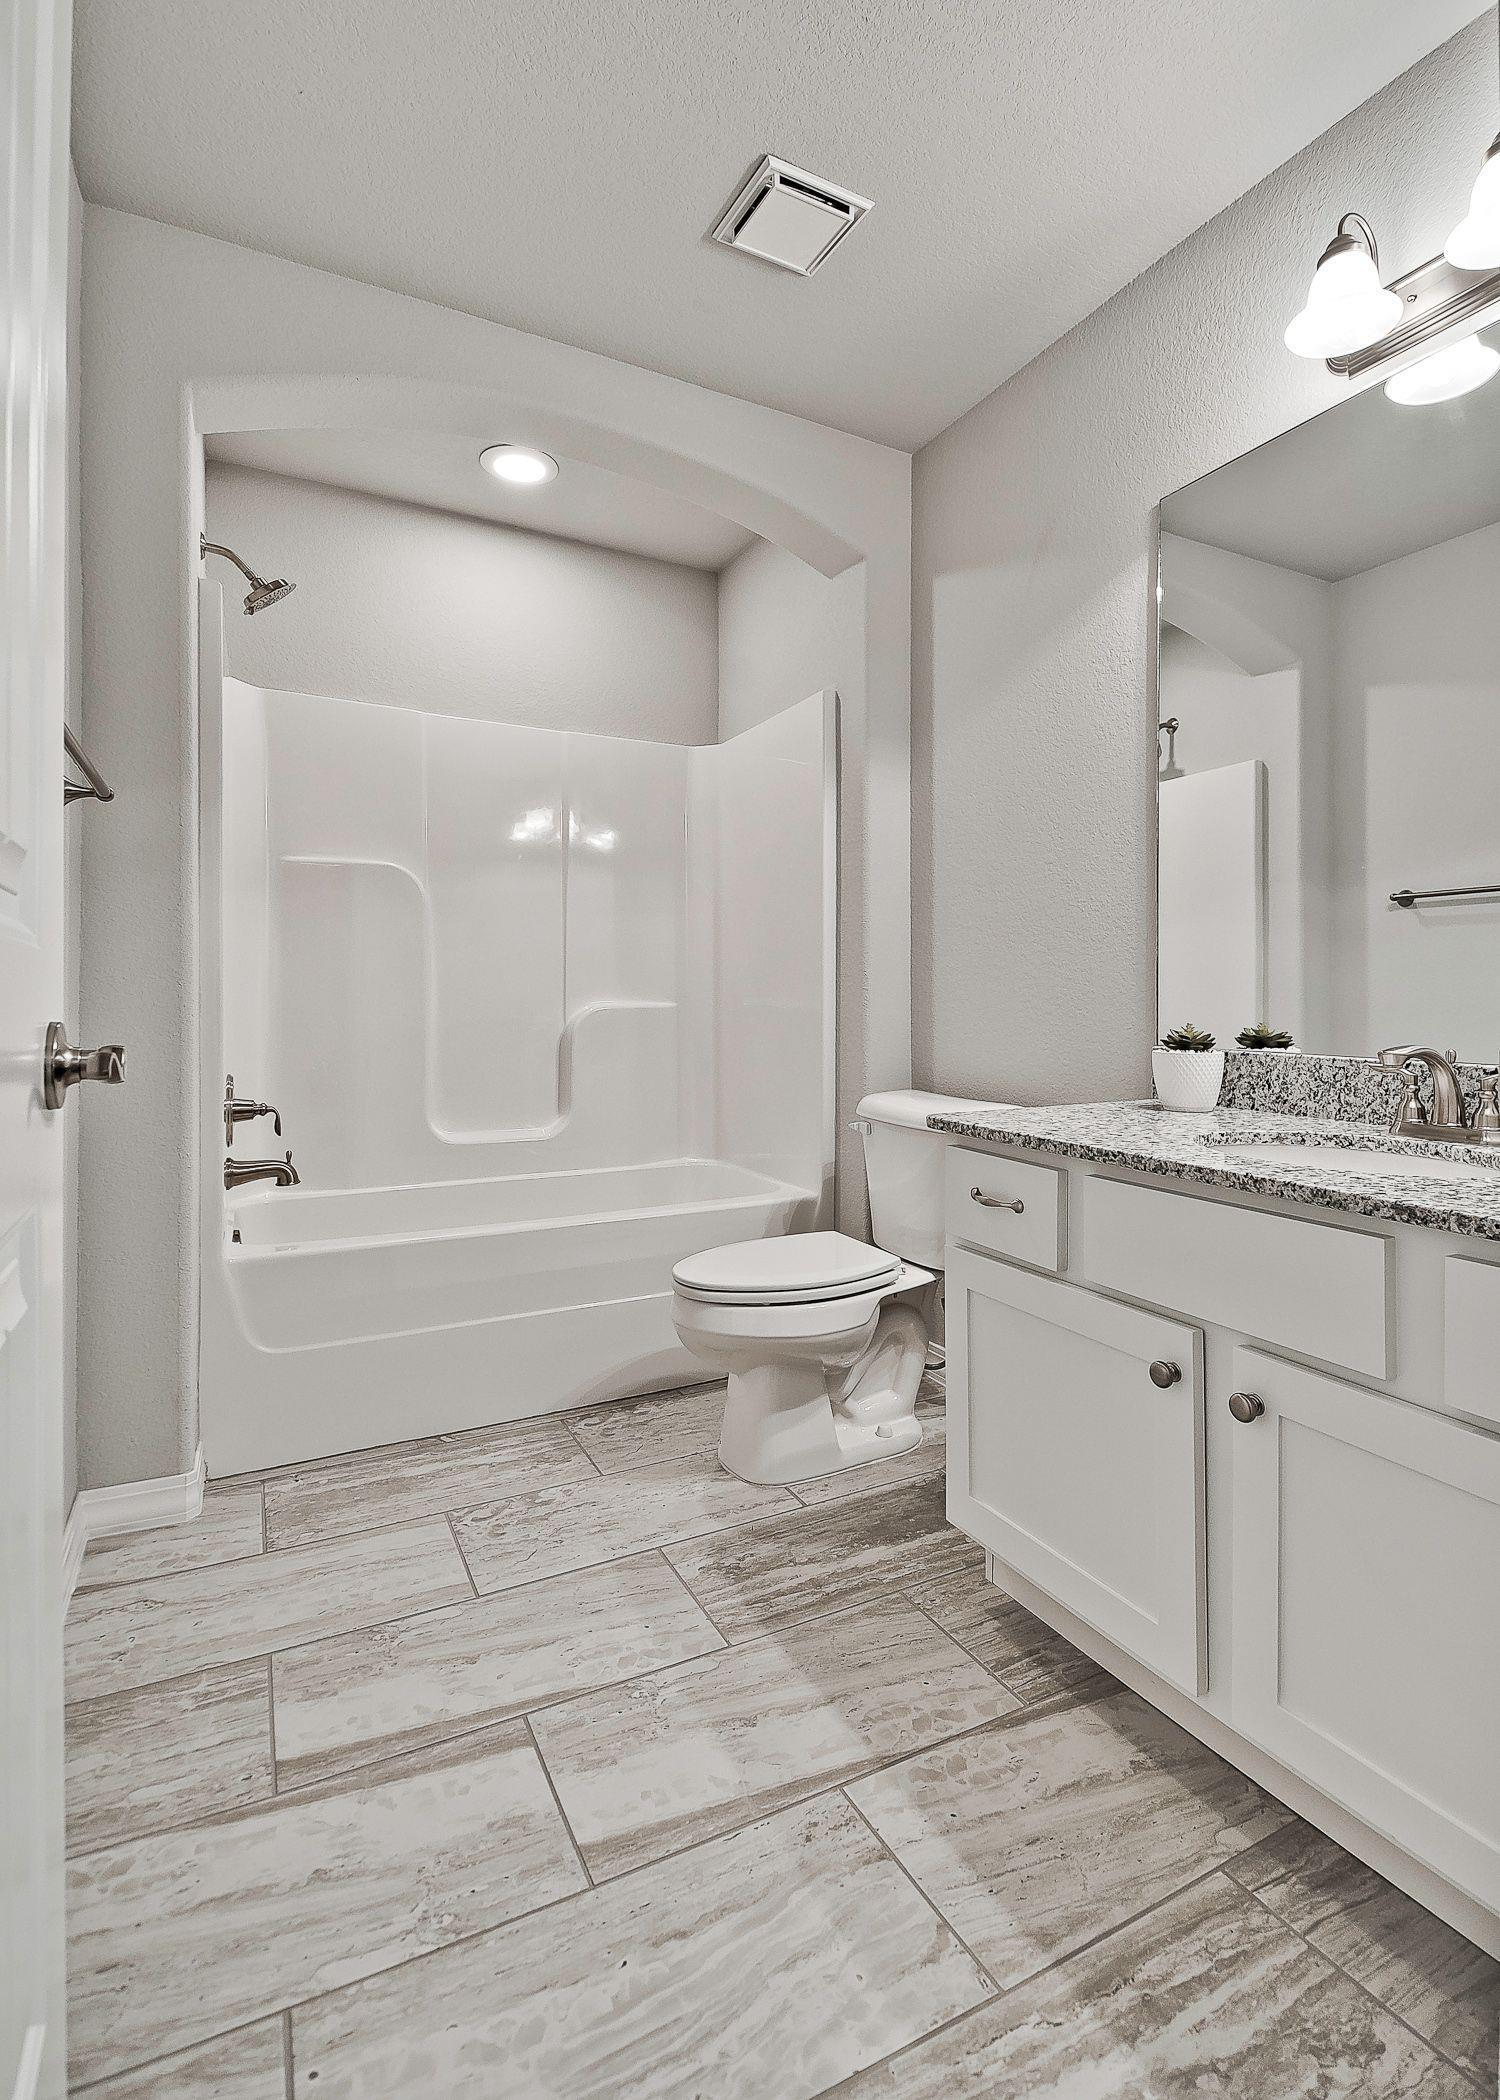 Bathroom featured in the Degray 1757 By Riverwood Homes - Arkansas in Fayetteville, AR